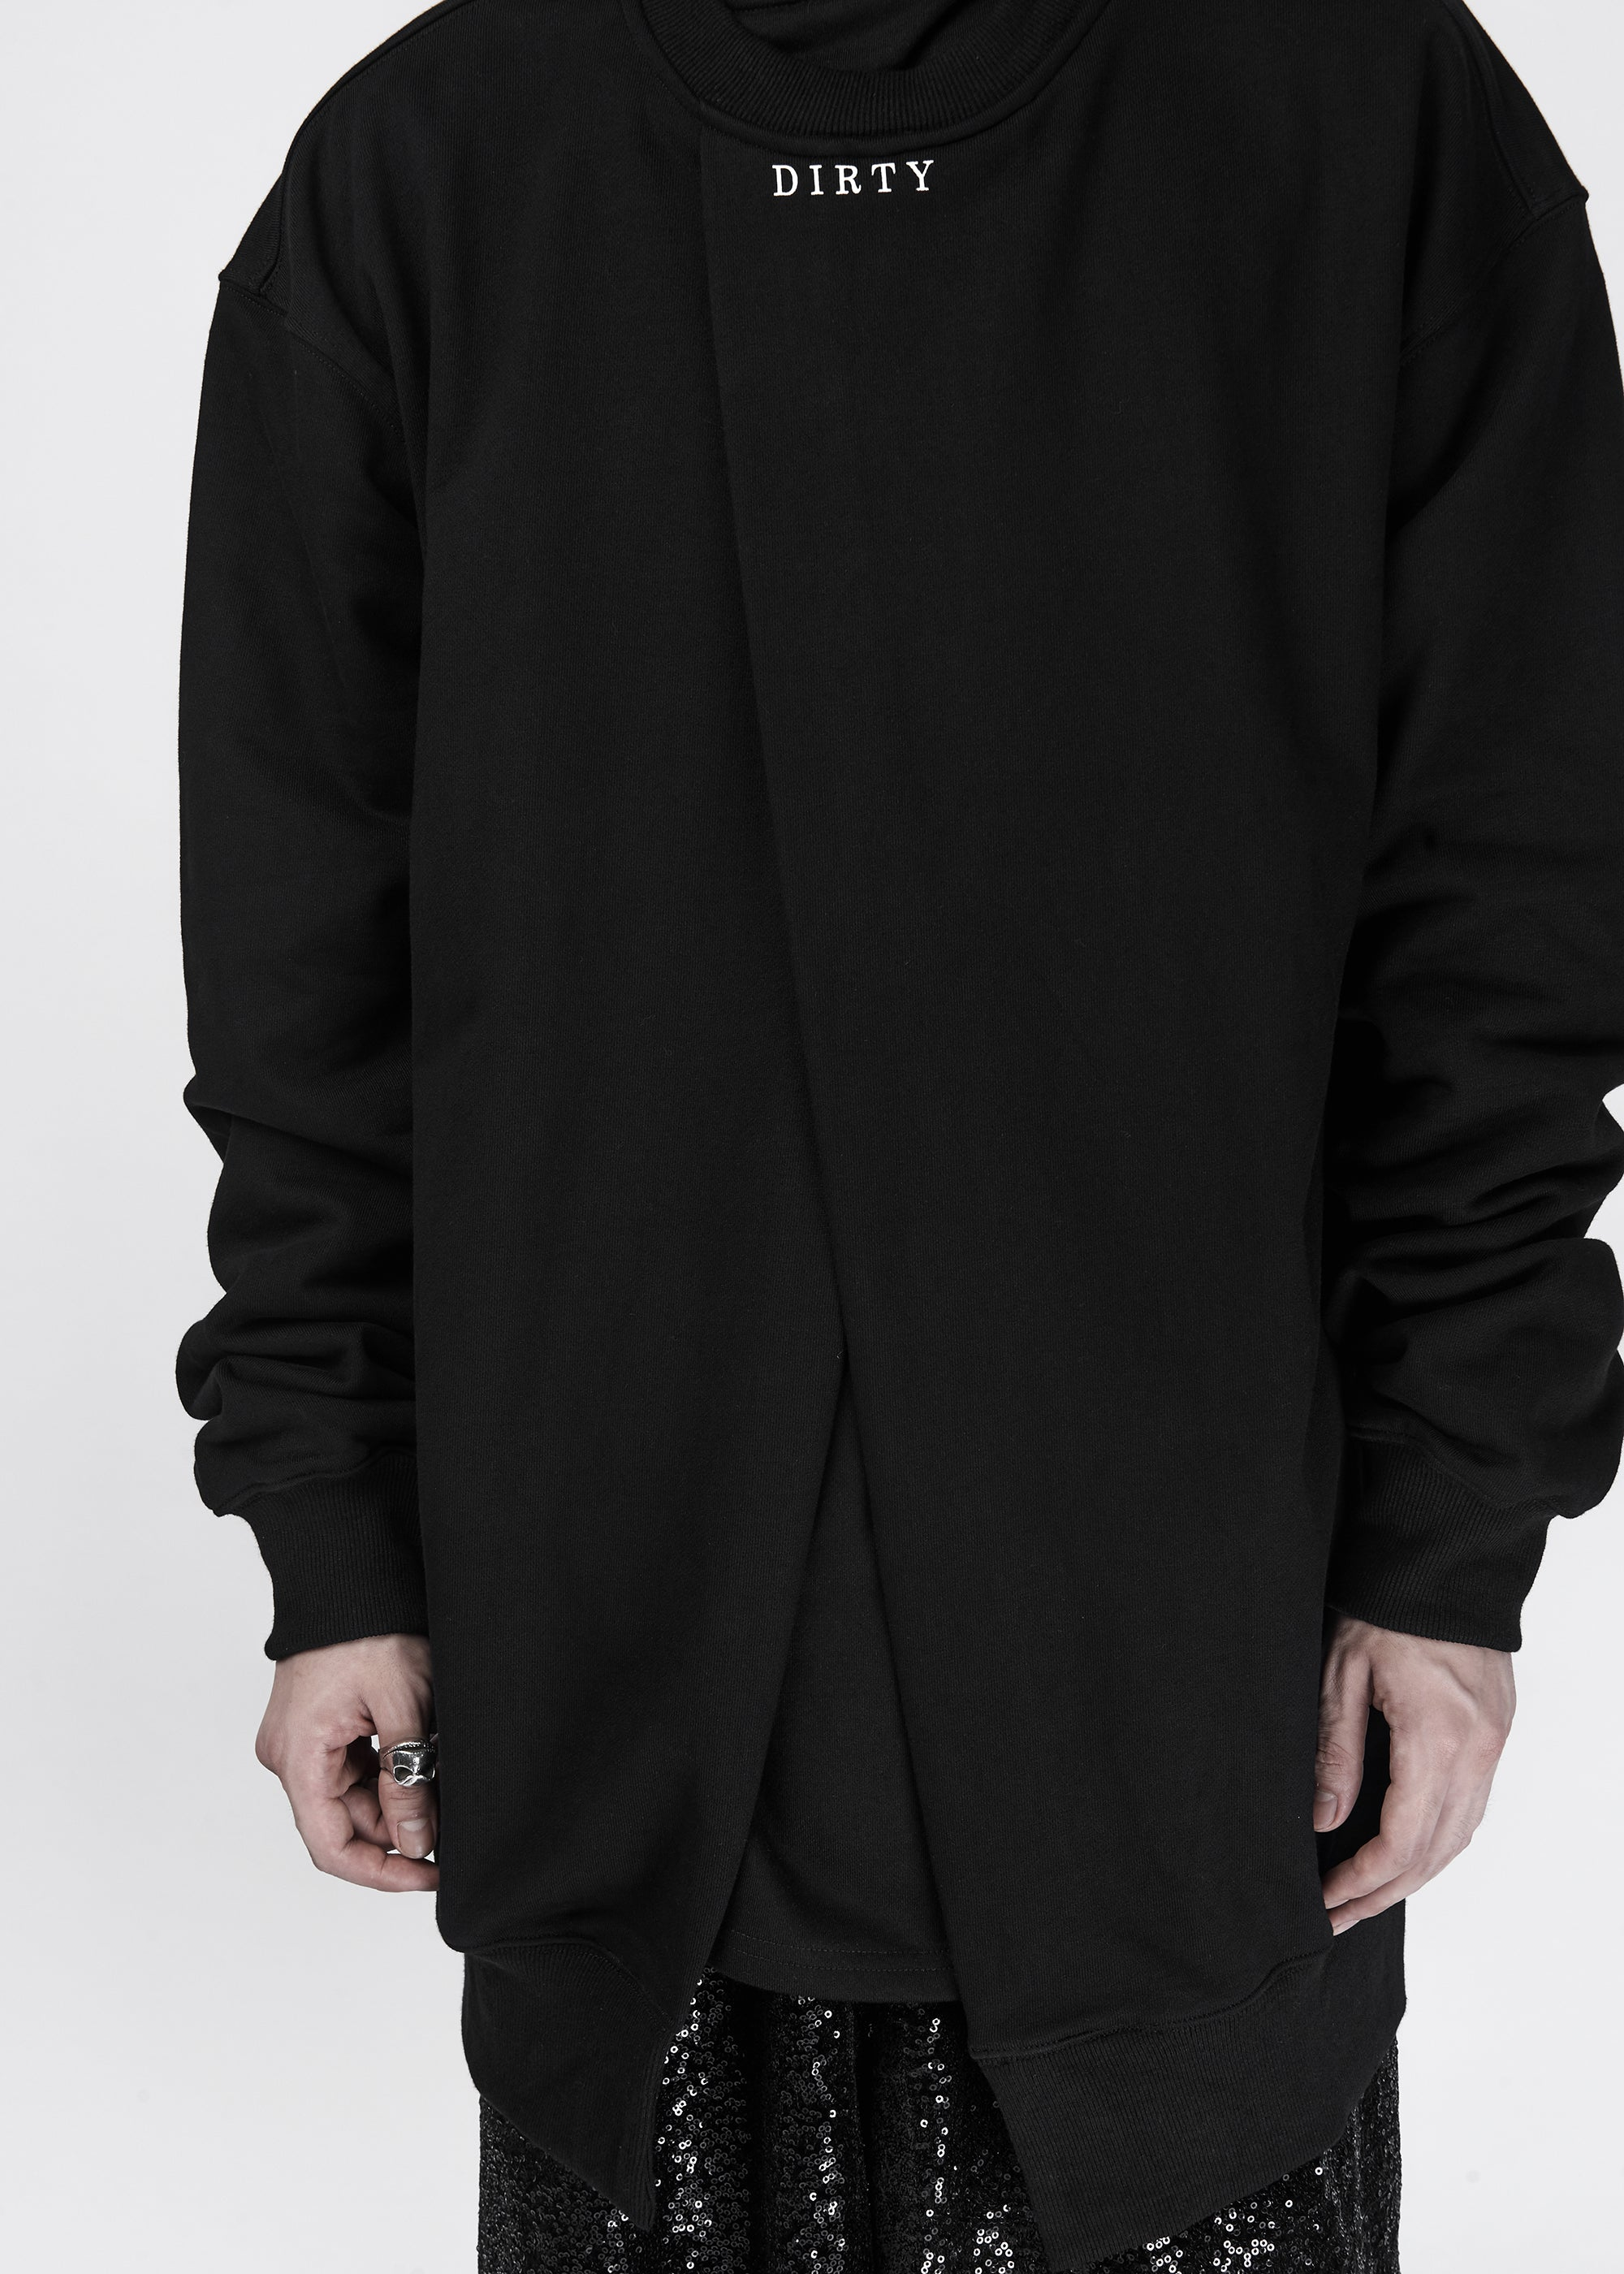 The Dirty Collection Split Front Sweatshirt - CGNY